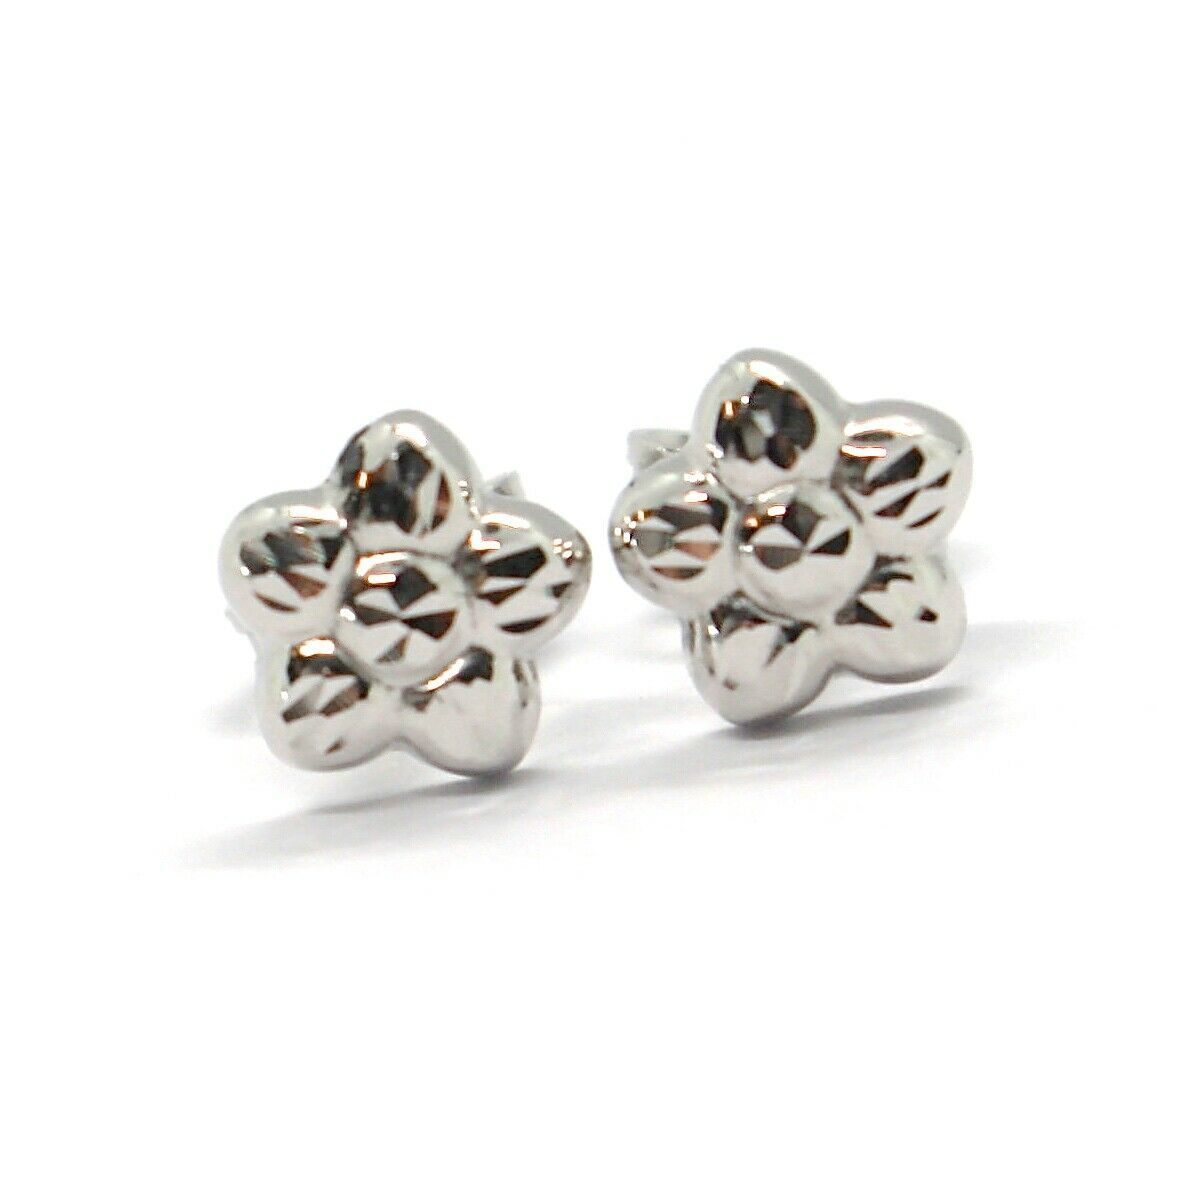 18K WHITE GOLD KIDS EARRINGS, FINELY HAMMERED MINI FLOWER DAISY, 0.28 INCHES